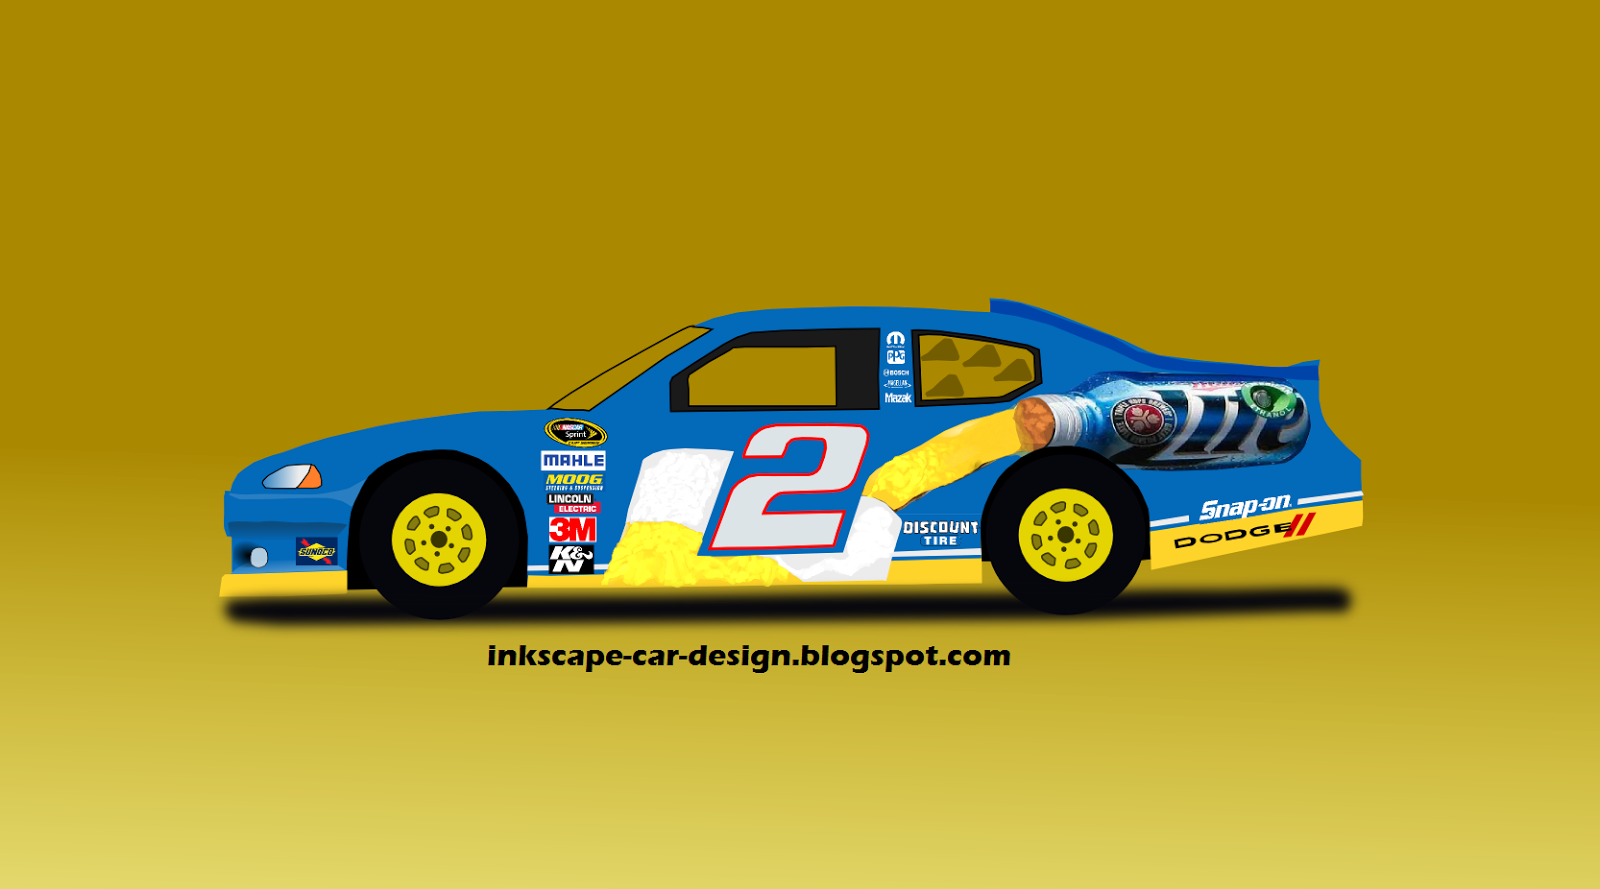 inkscape car design